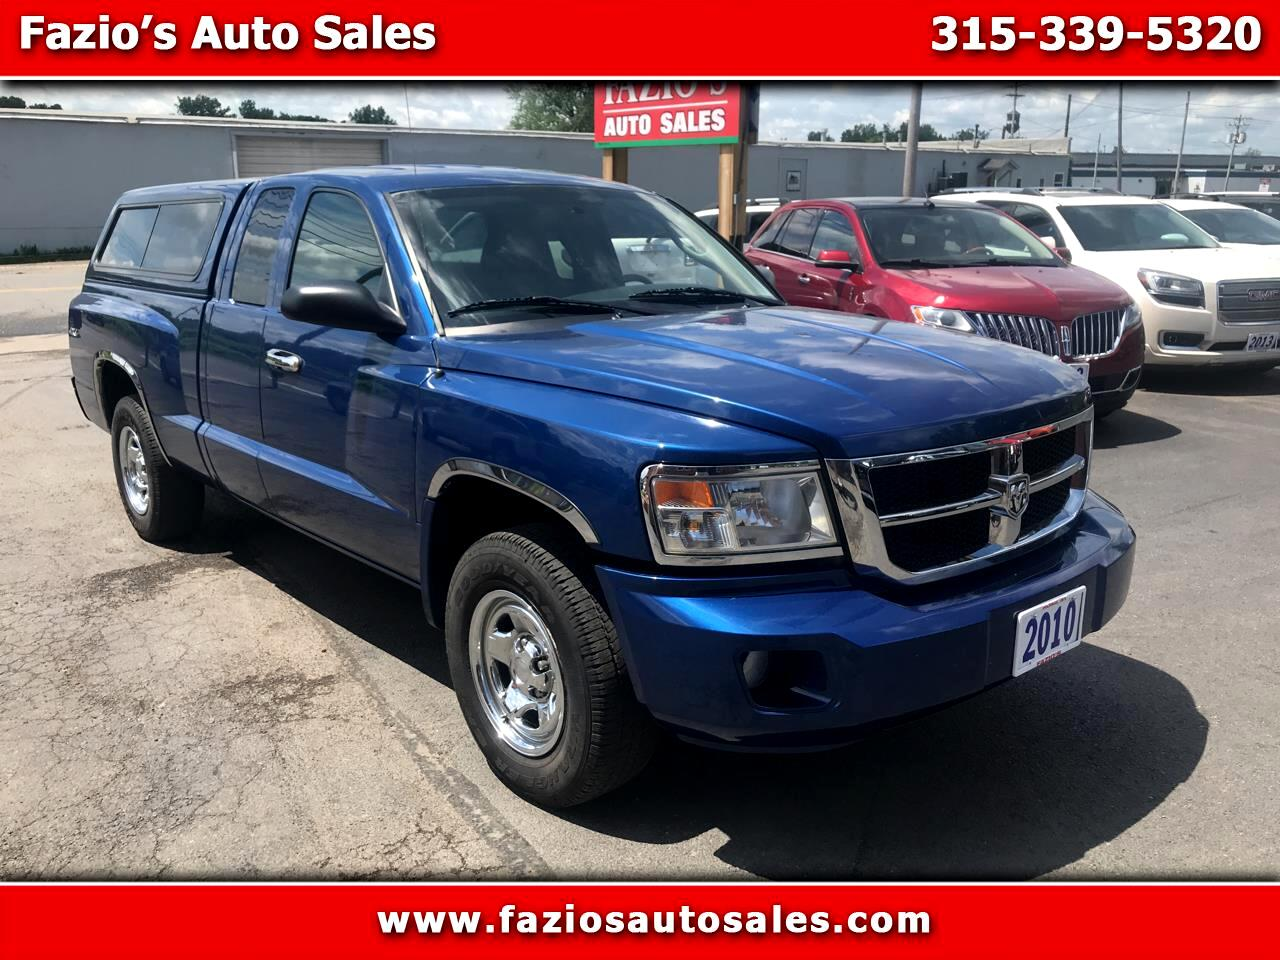 2010 Dodge Dakota 2dr Club Cab 131